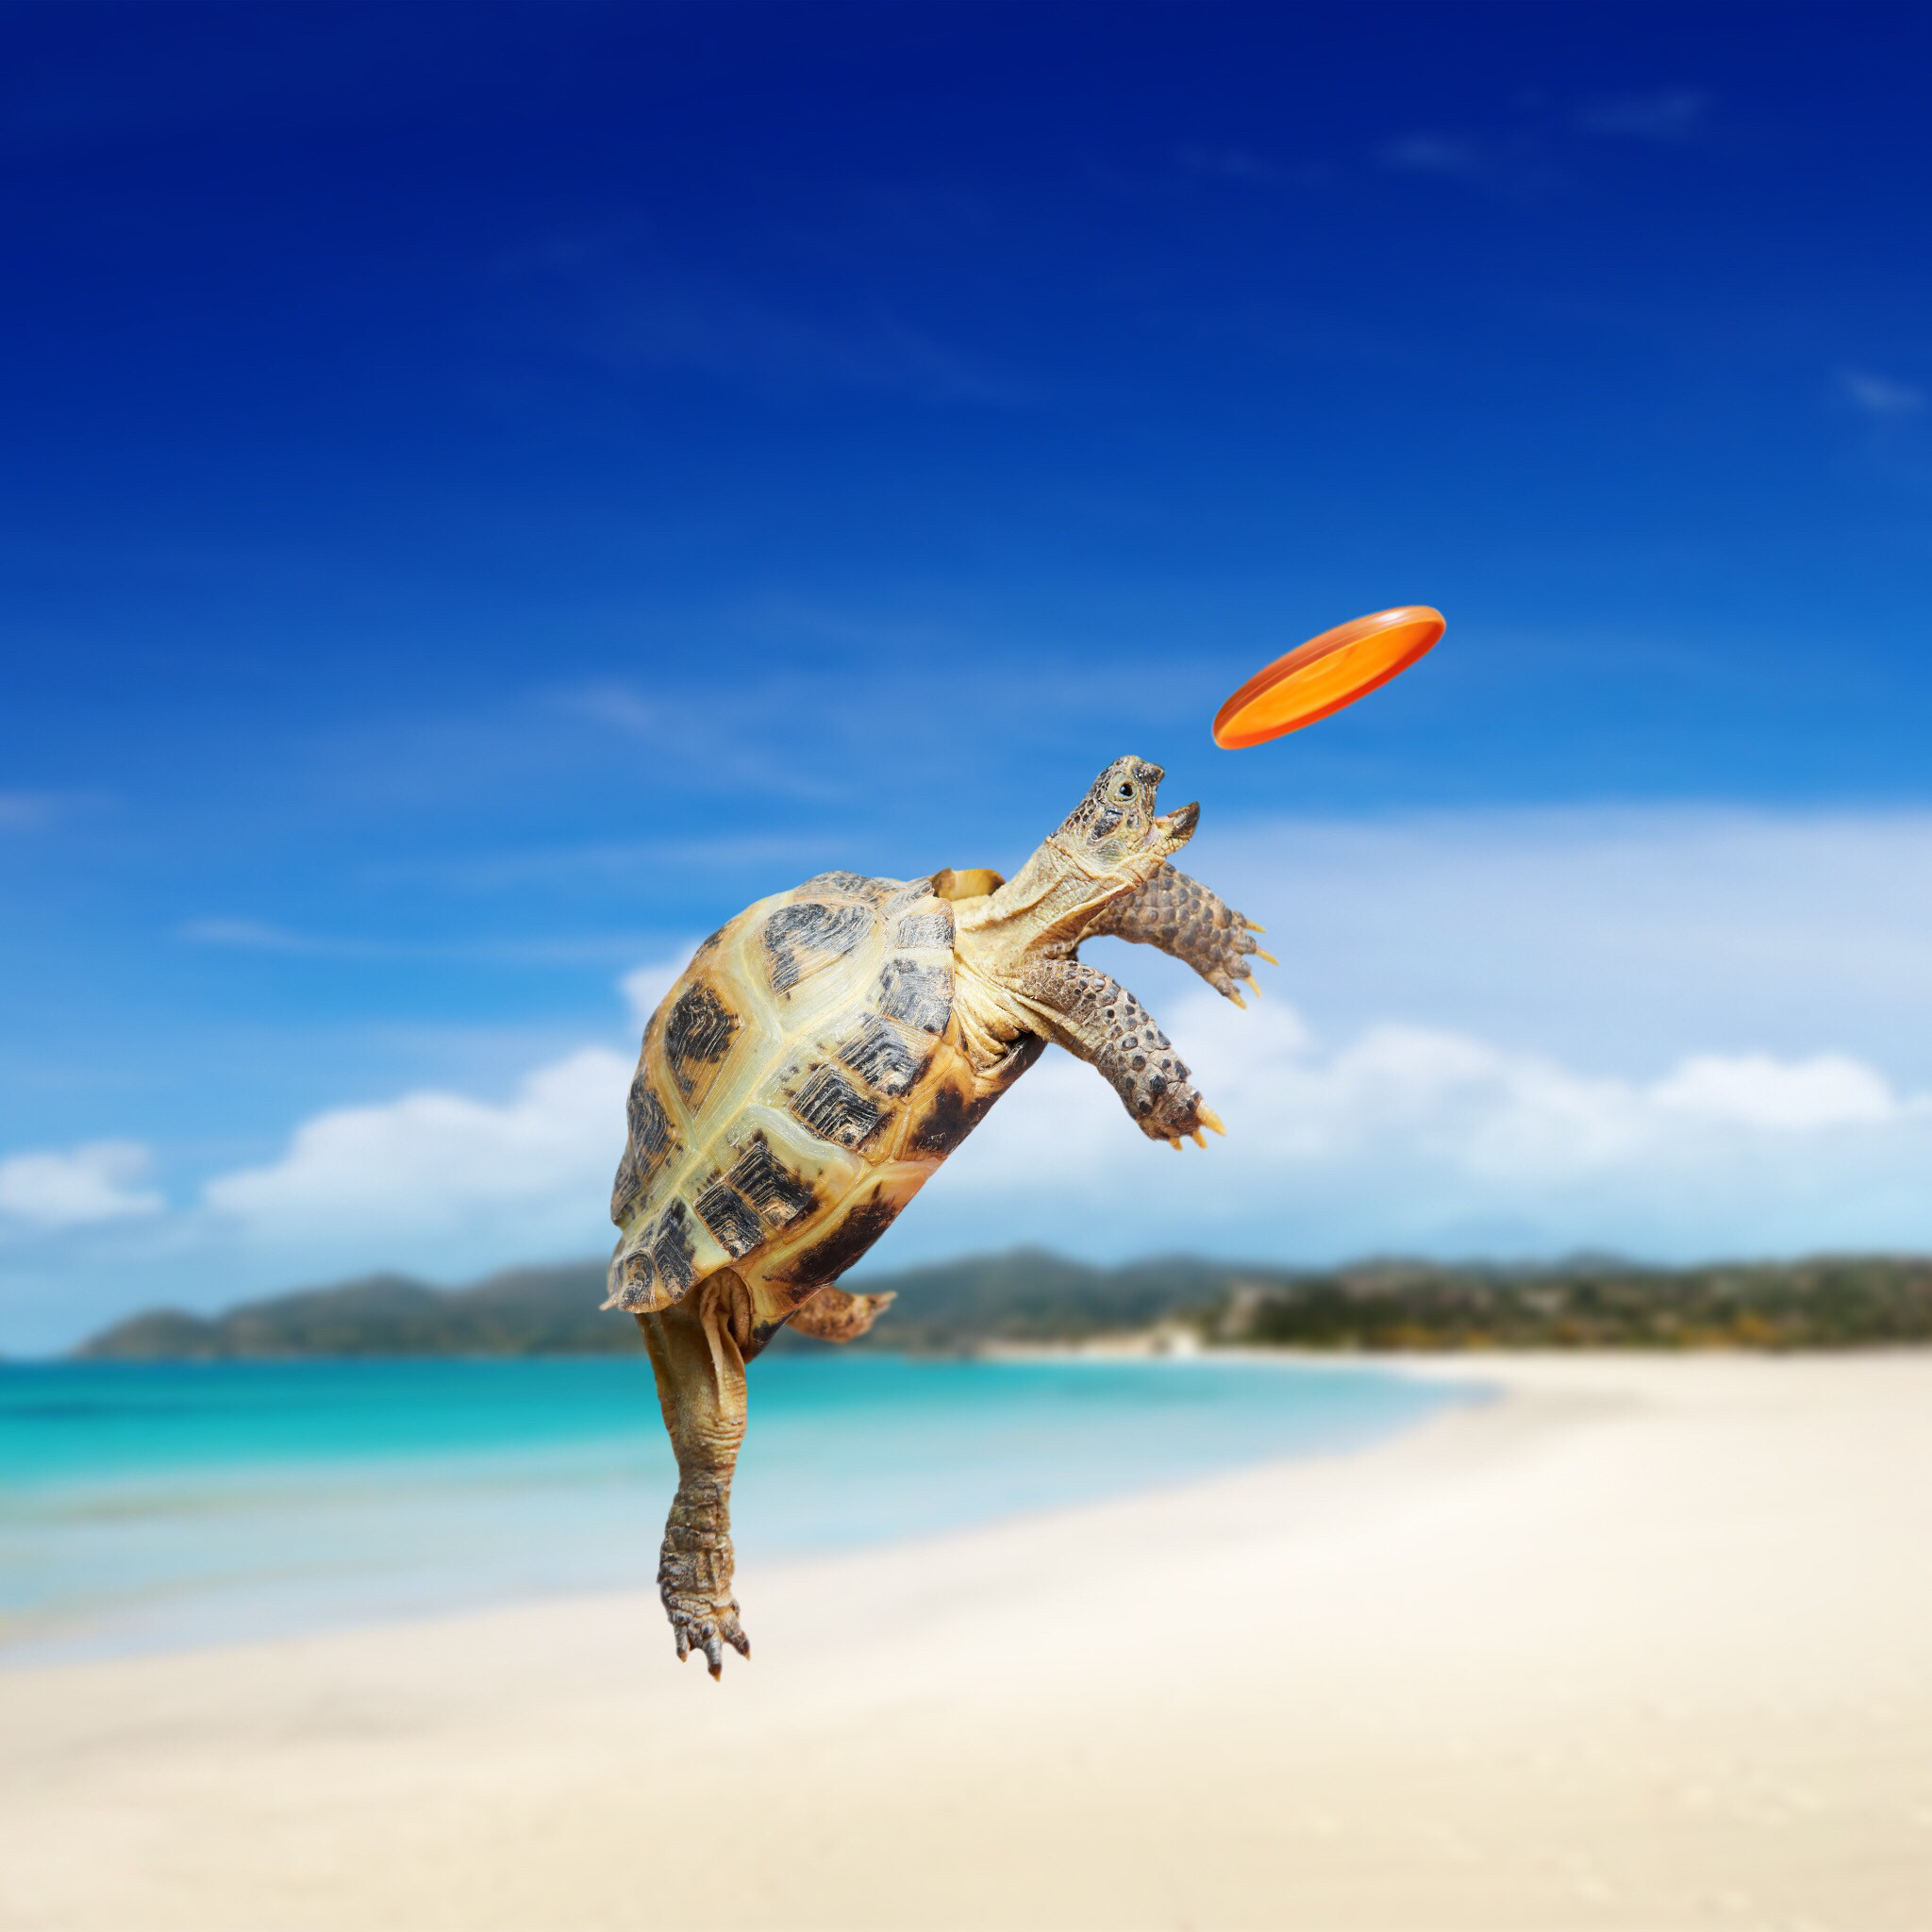 Baby turtle trying to catch a miniature frisbee,can it get better